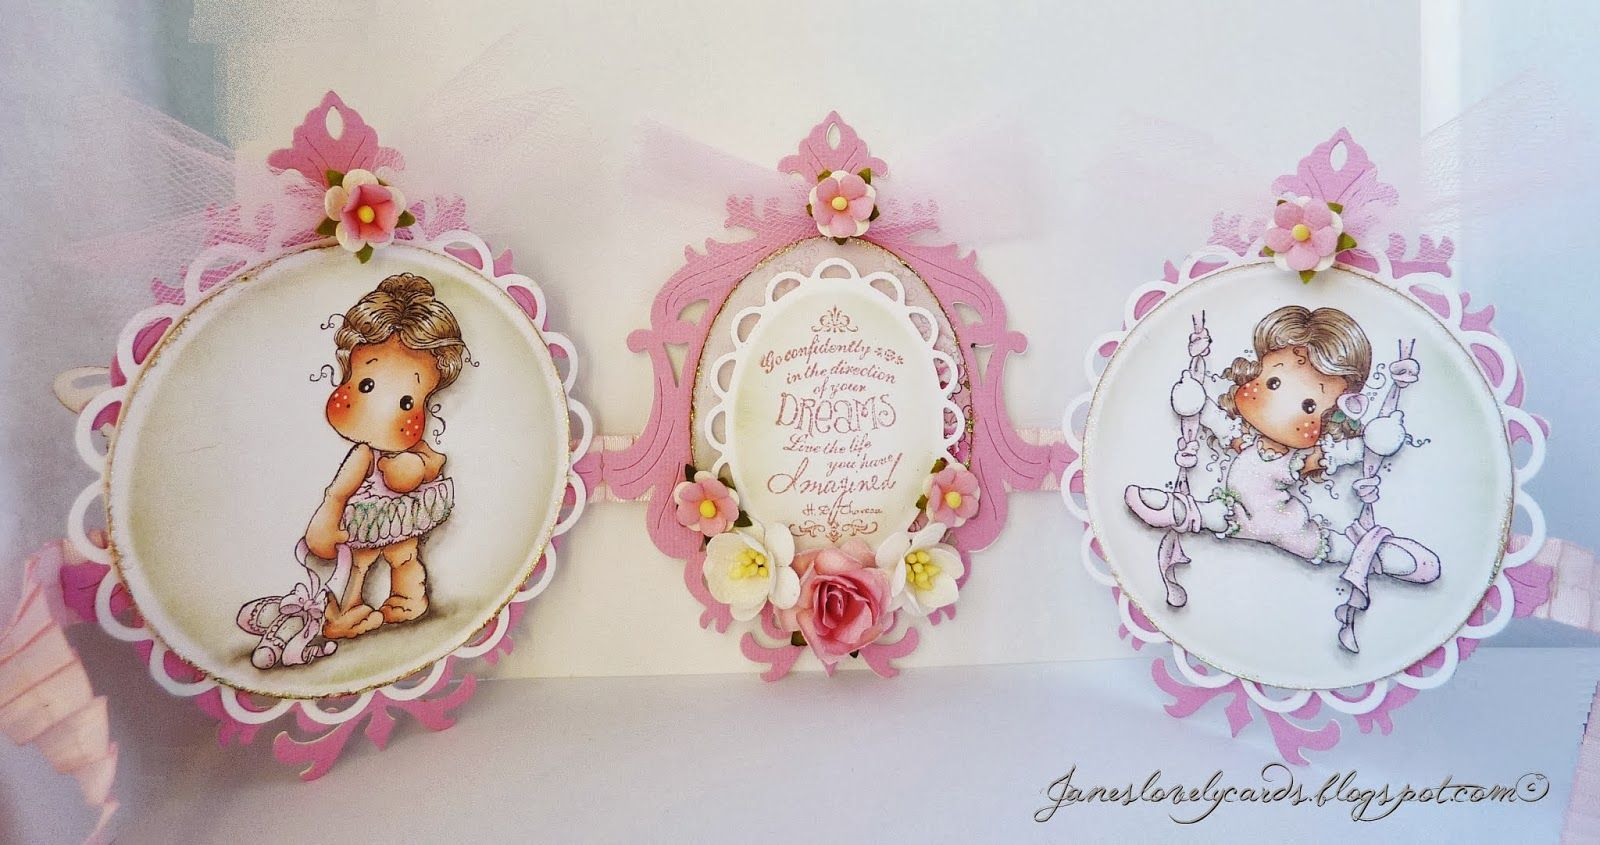 Jane's Lovely Cards : Magnolia-licious DT - In the Pink